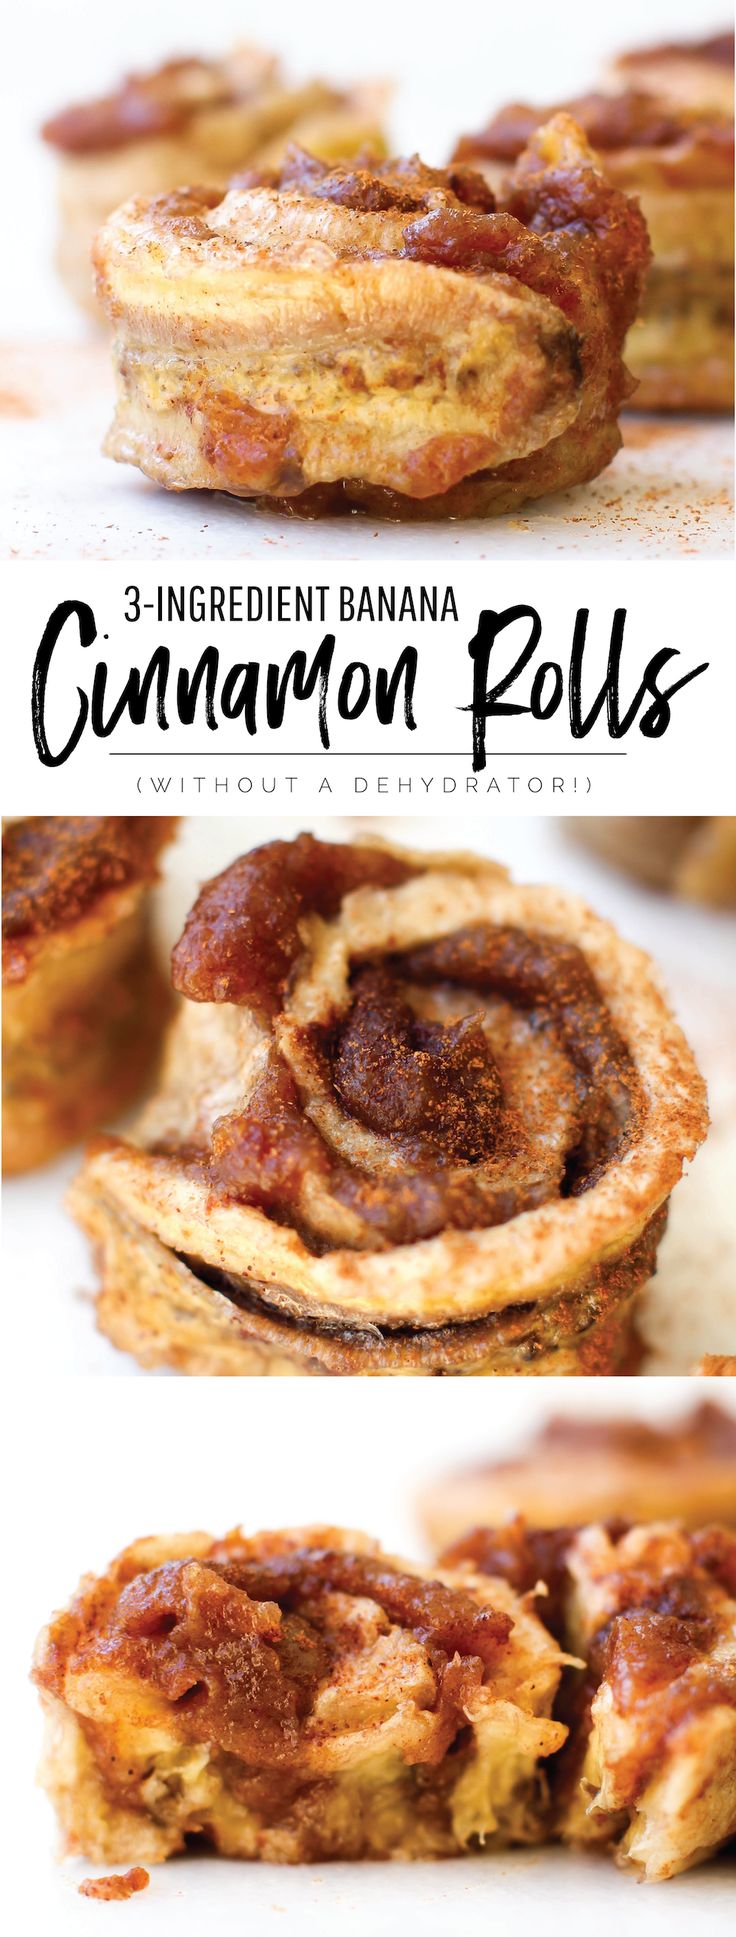 Banana Cinnamon Rolls (No Dehydrator!) | 3-Ingredient Vegan Recipe